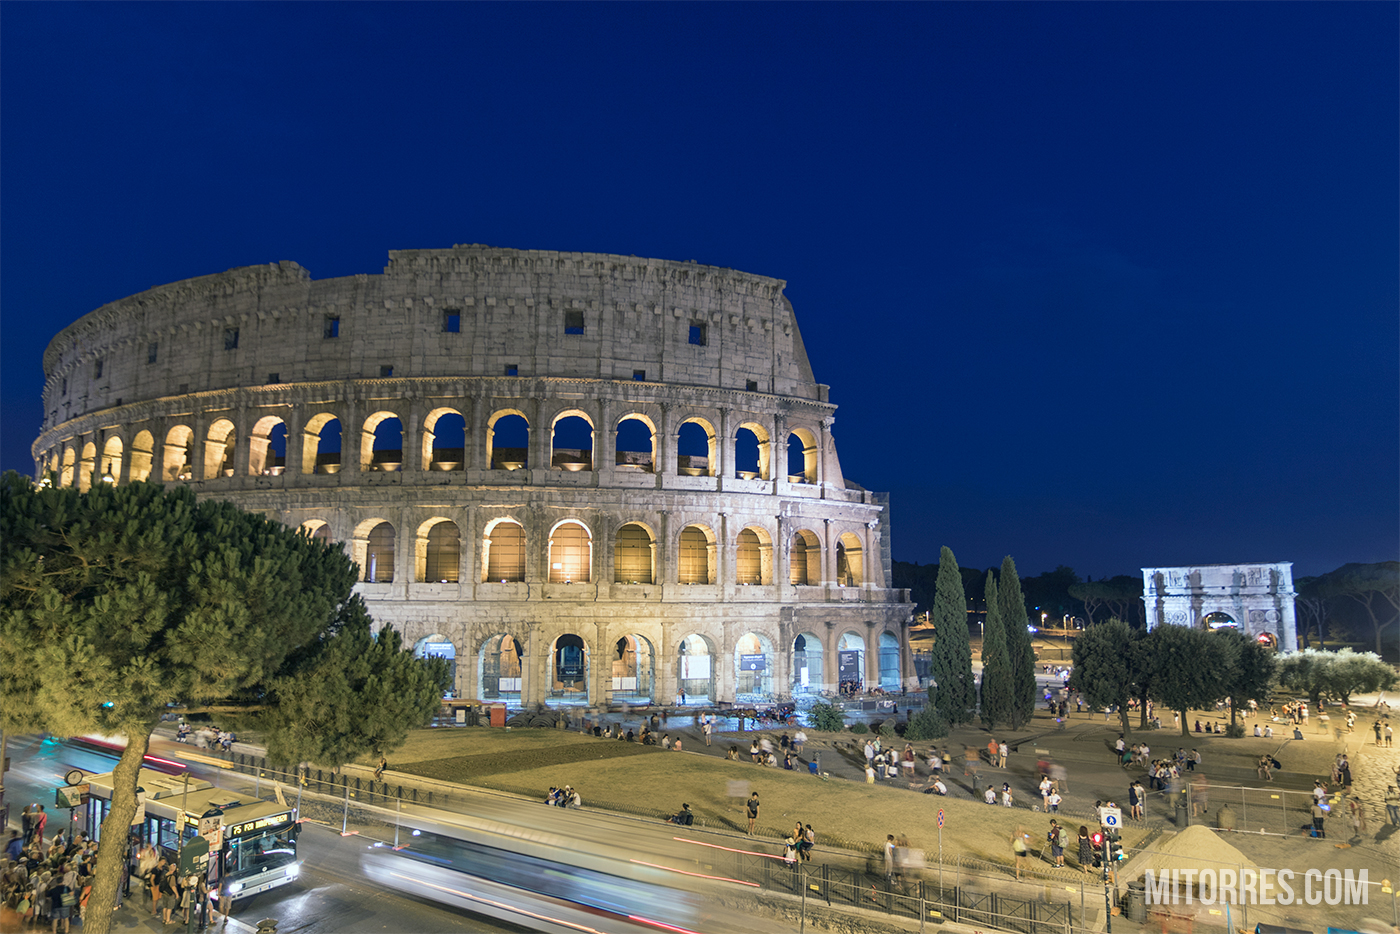 The Roman Colosseum at night in Rome, Italy. Photo: Marlon I. Torres